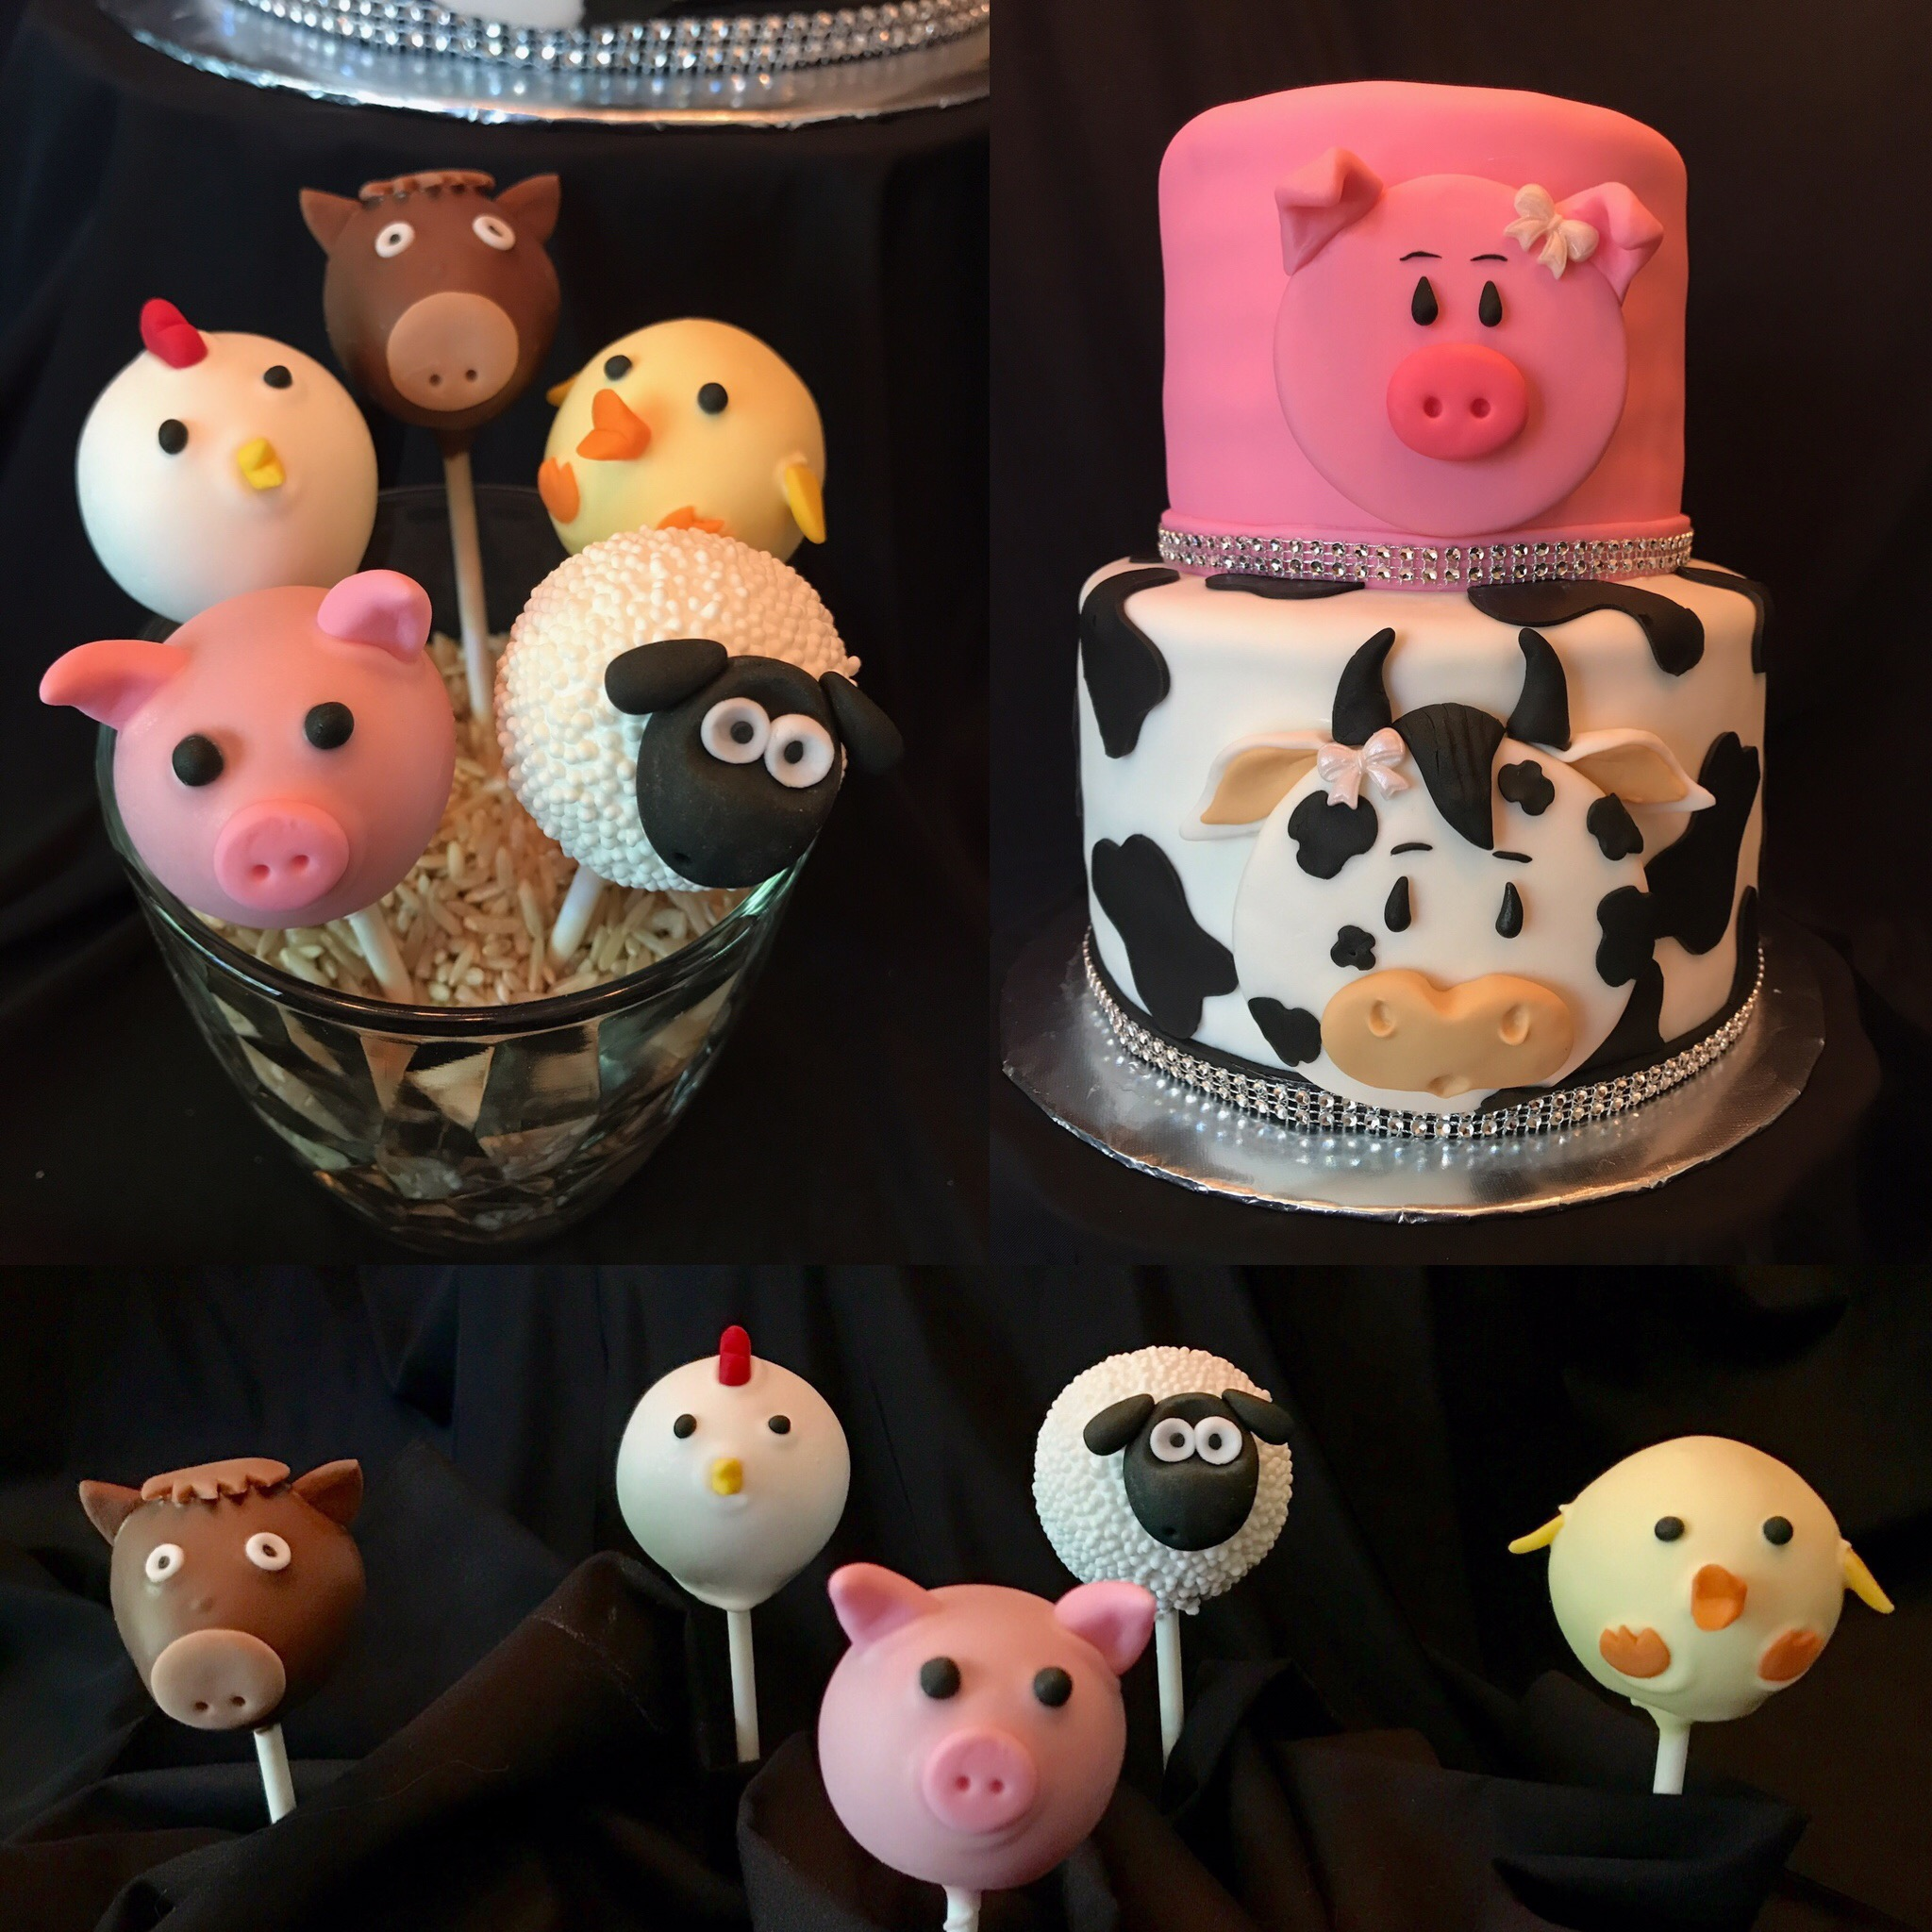 Farm animal cake/cake pops